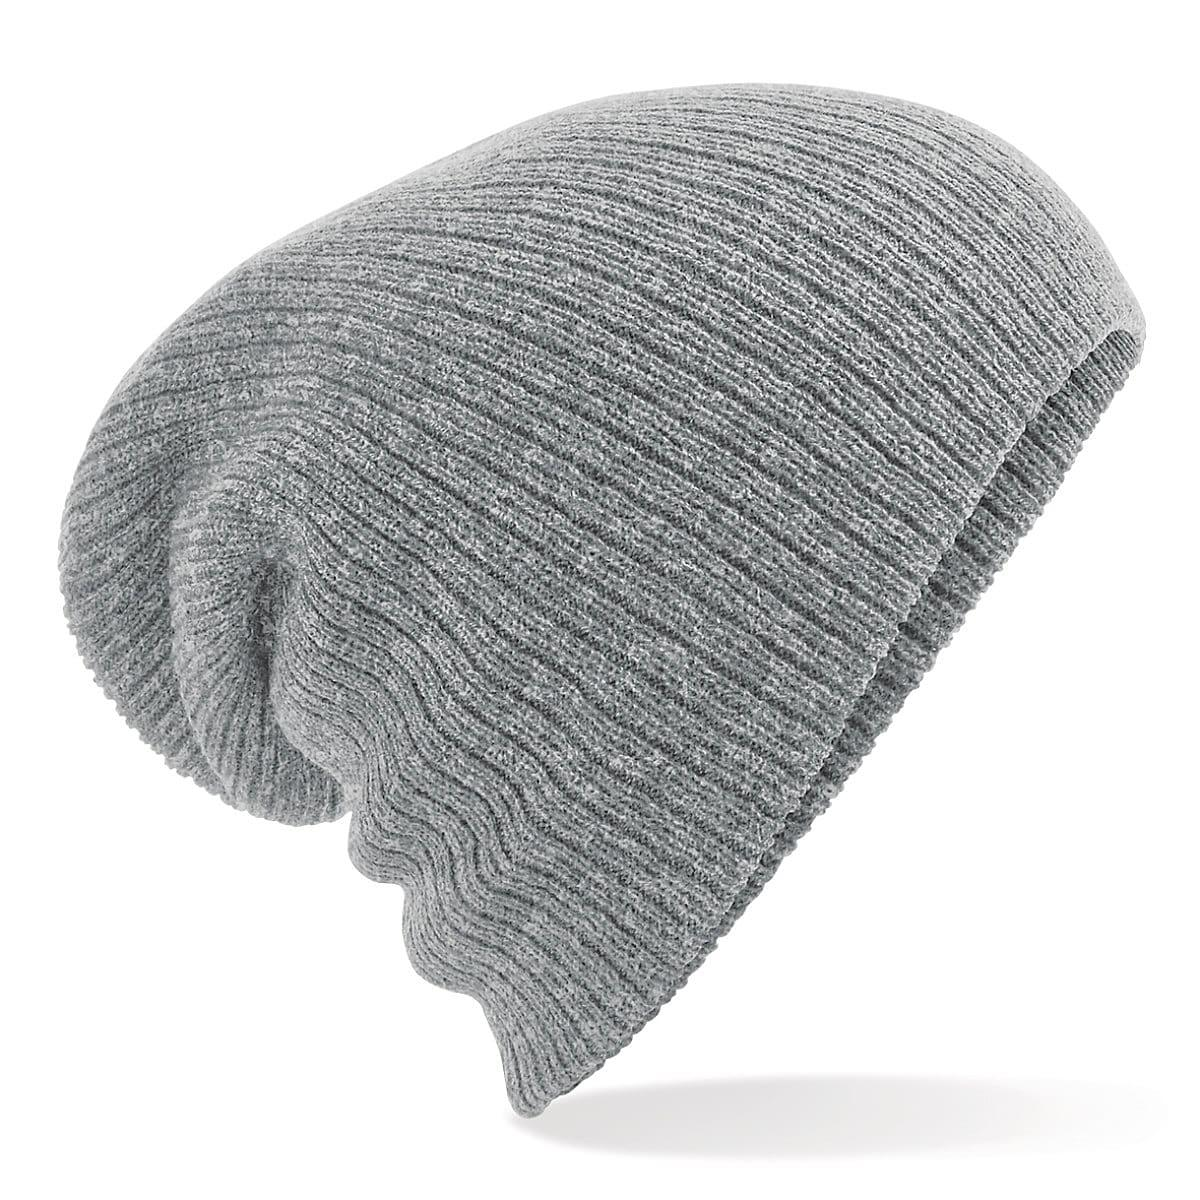 Beechfield Heavy Gauge Slouch Beanie Hat in Heather Grey (Product Code: B449)